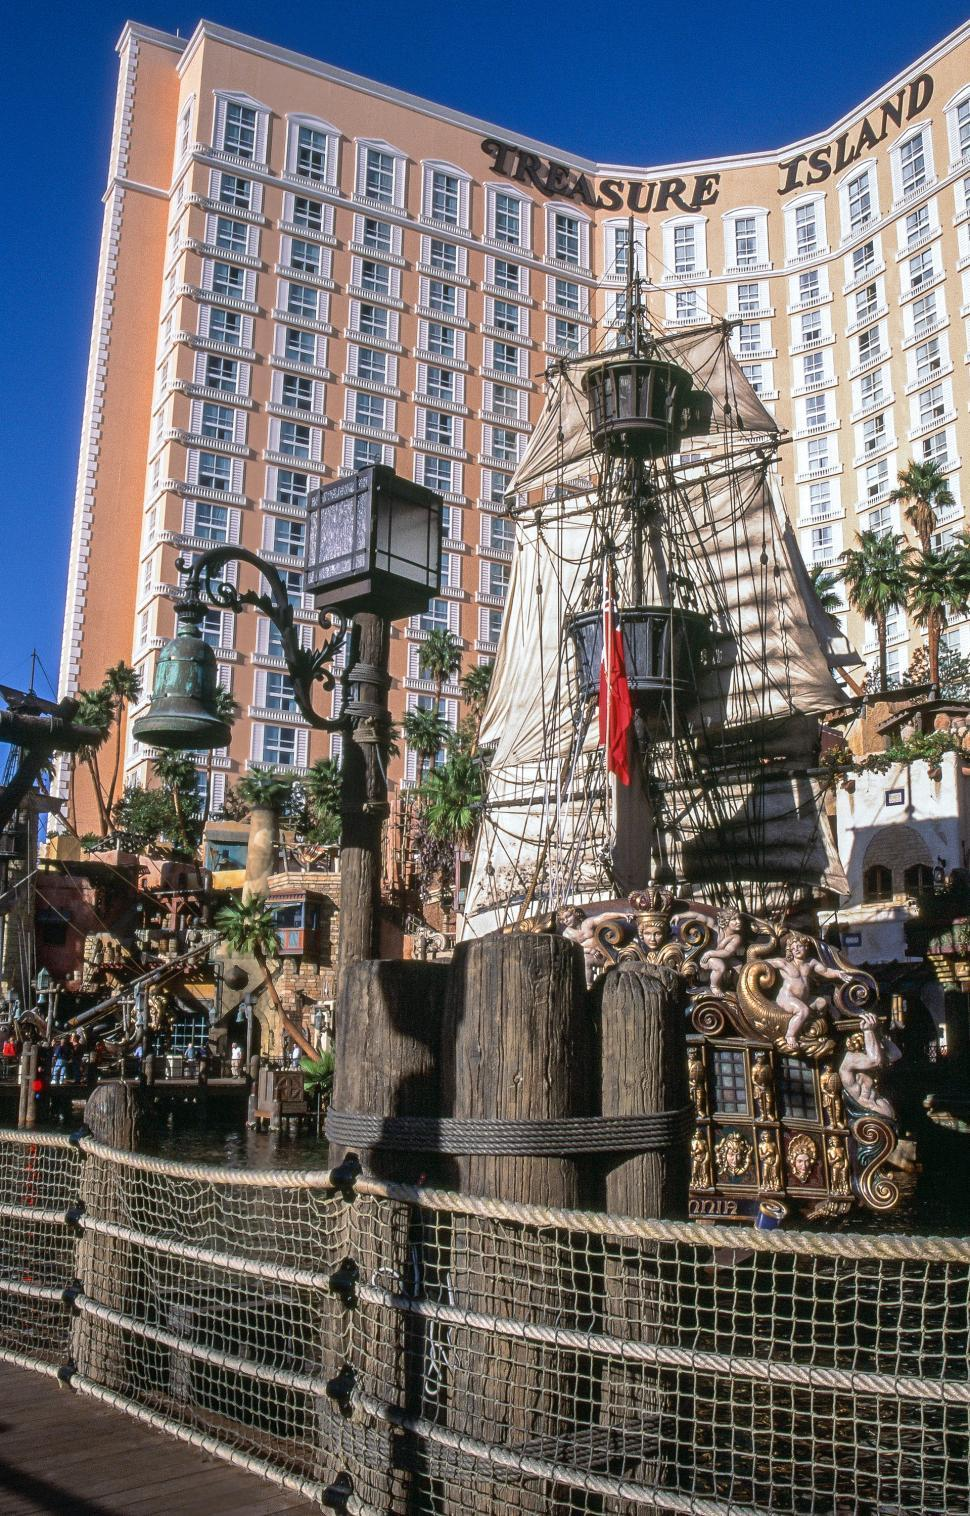 Download Free Stock HD Photo of Treasure Island Hotel and Casino Pirate Ship Online